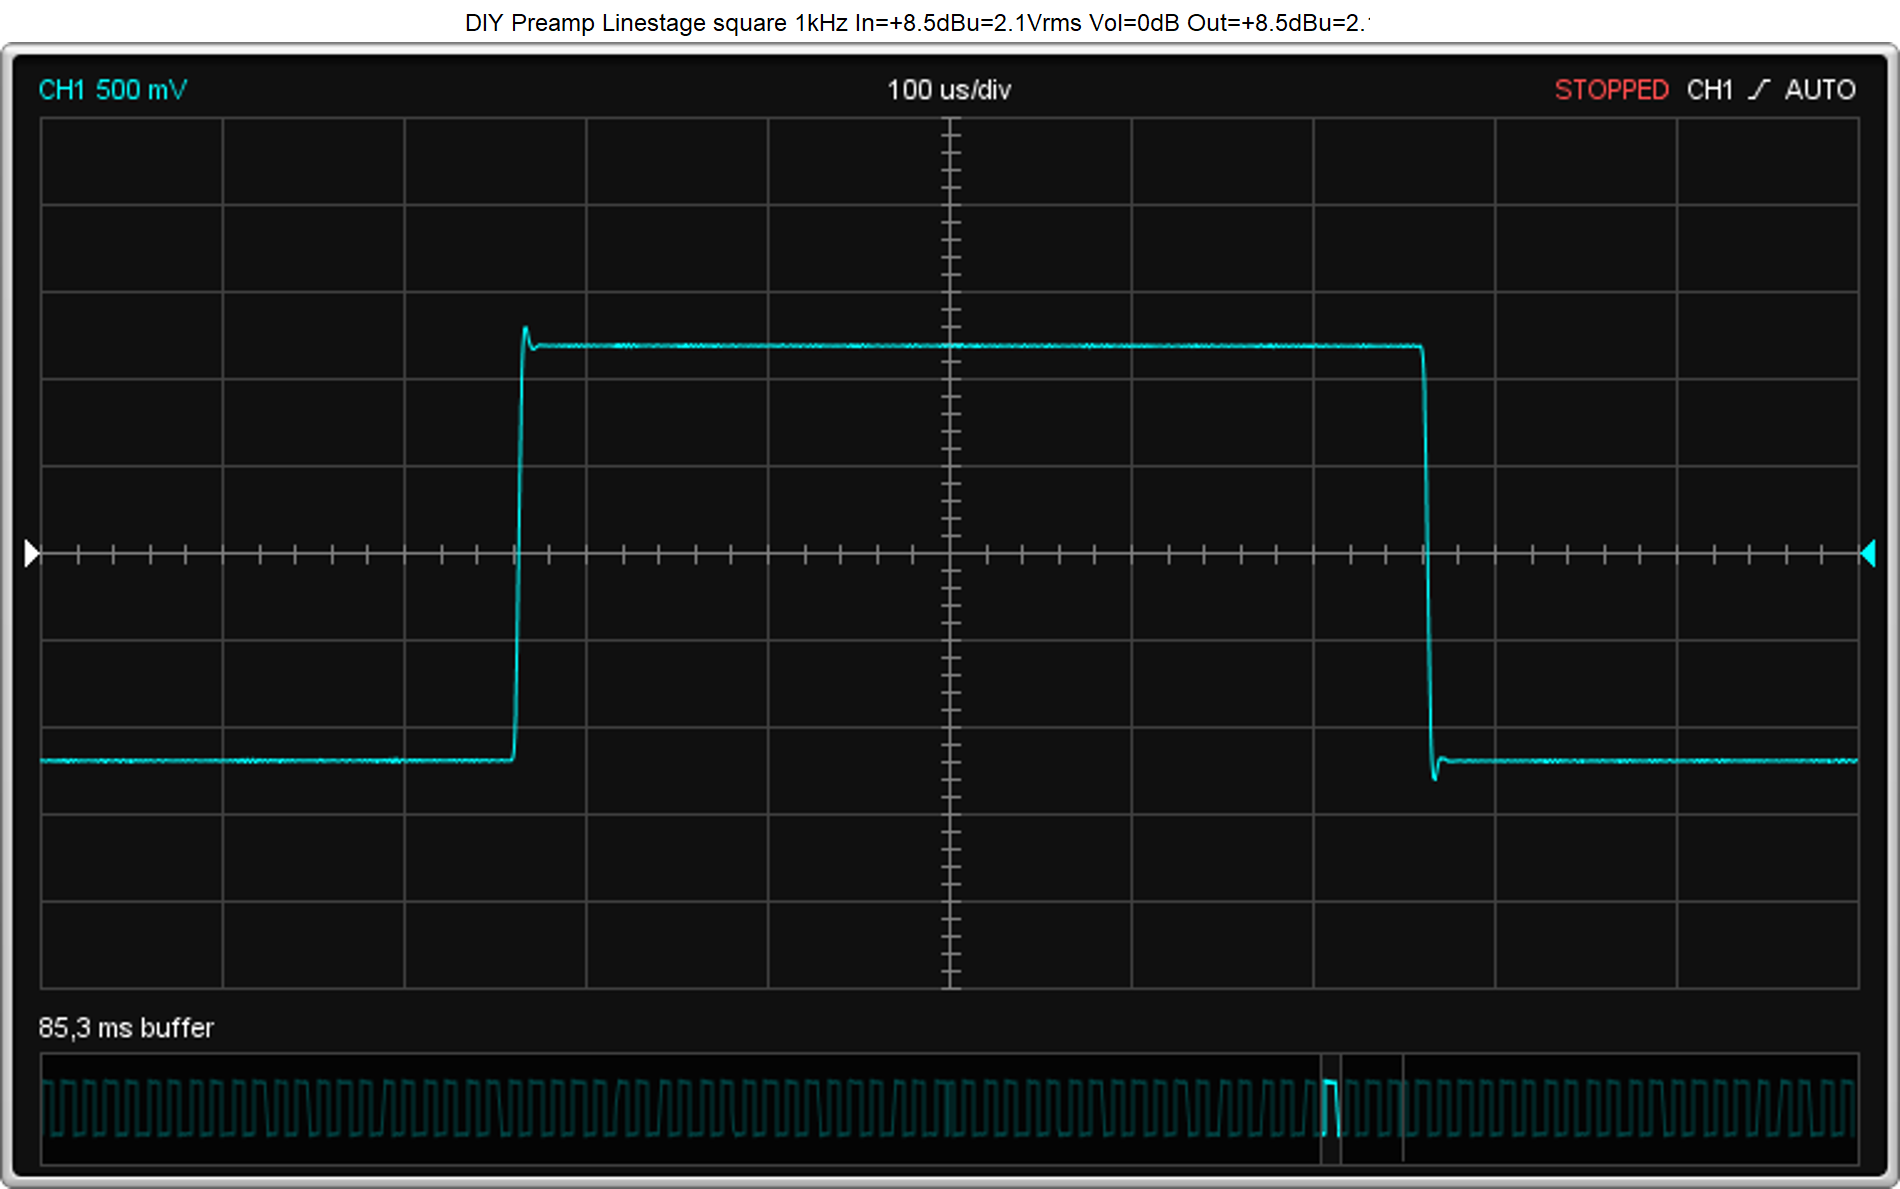 DIY Preamp Linestage square 1kHz In=+8.5dBu=2.1Vrms Vol=0dB Out=+8.5dBu=2.1Vrms.png